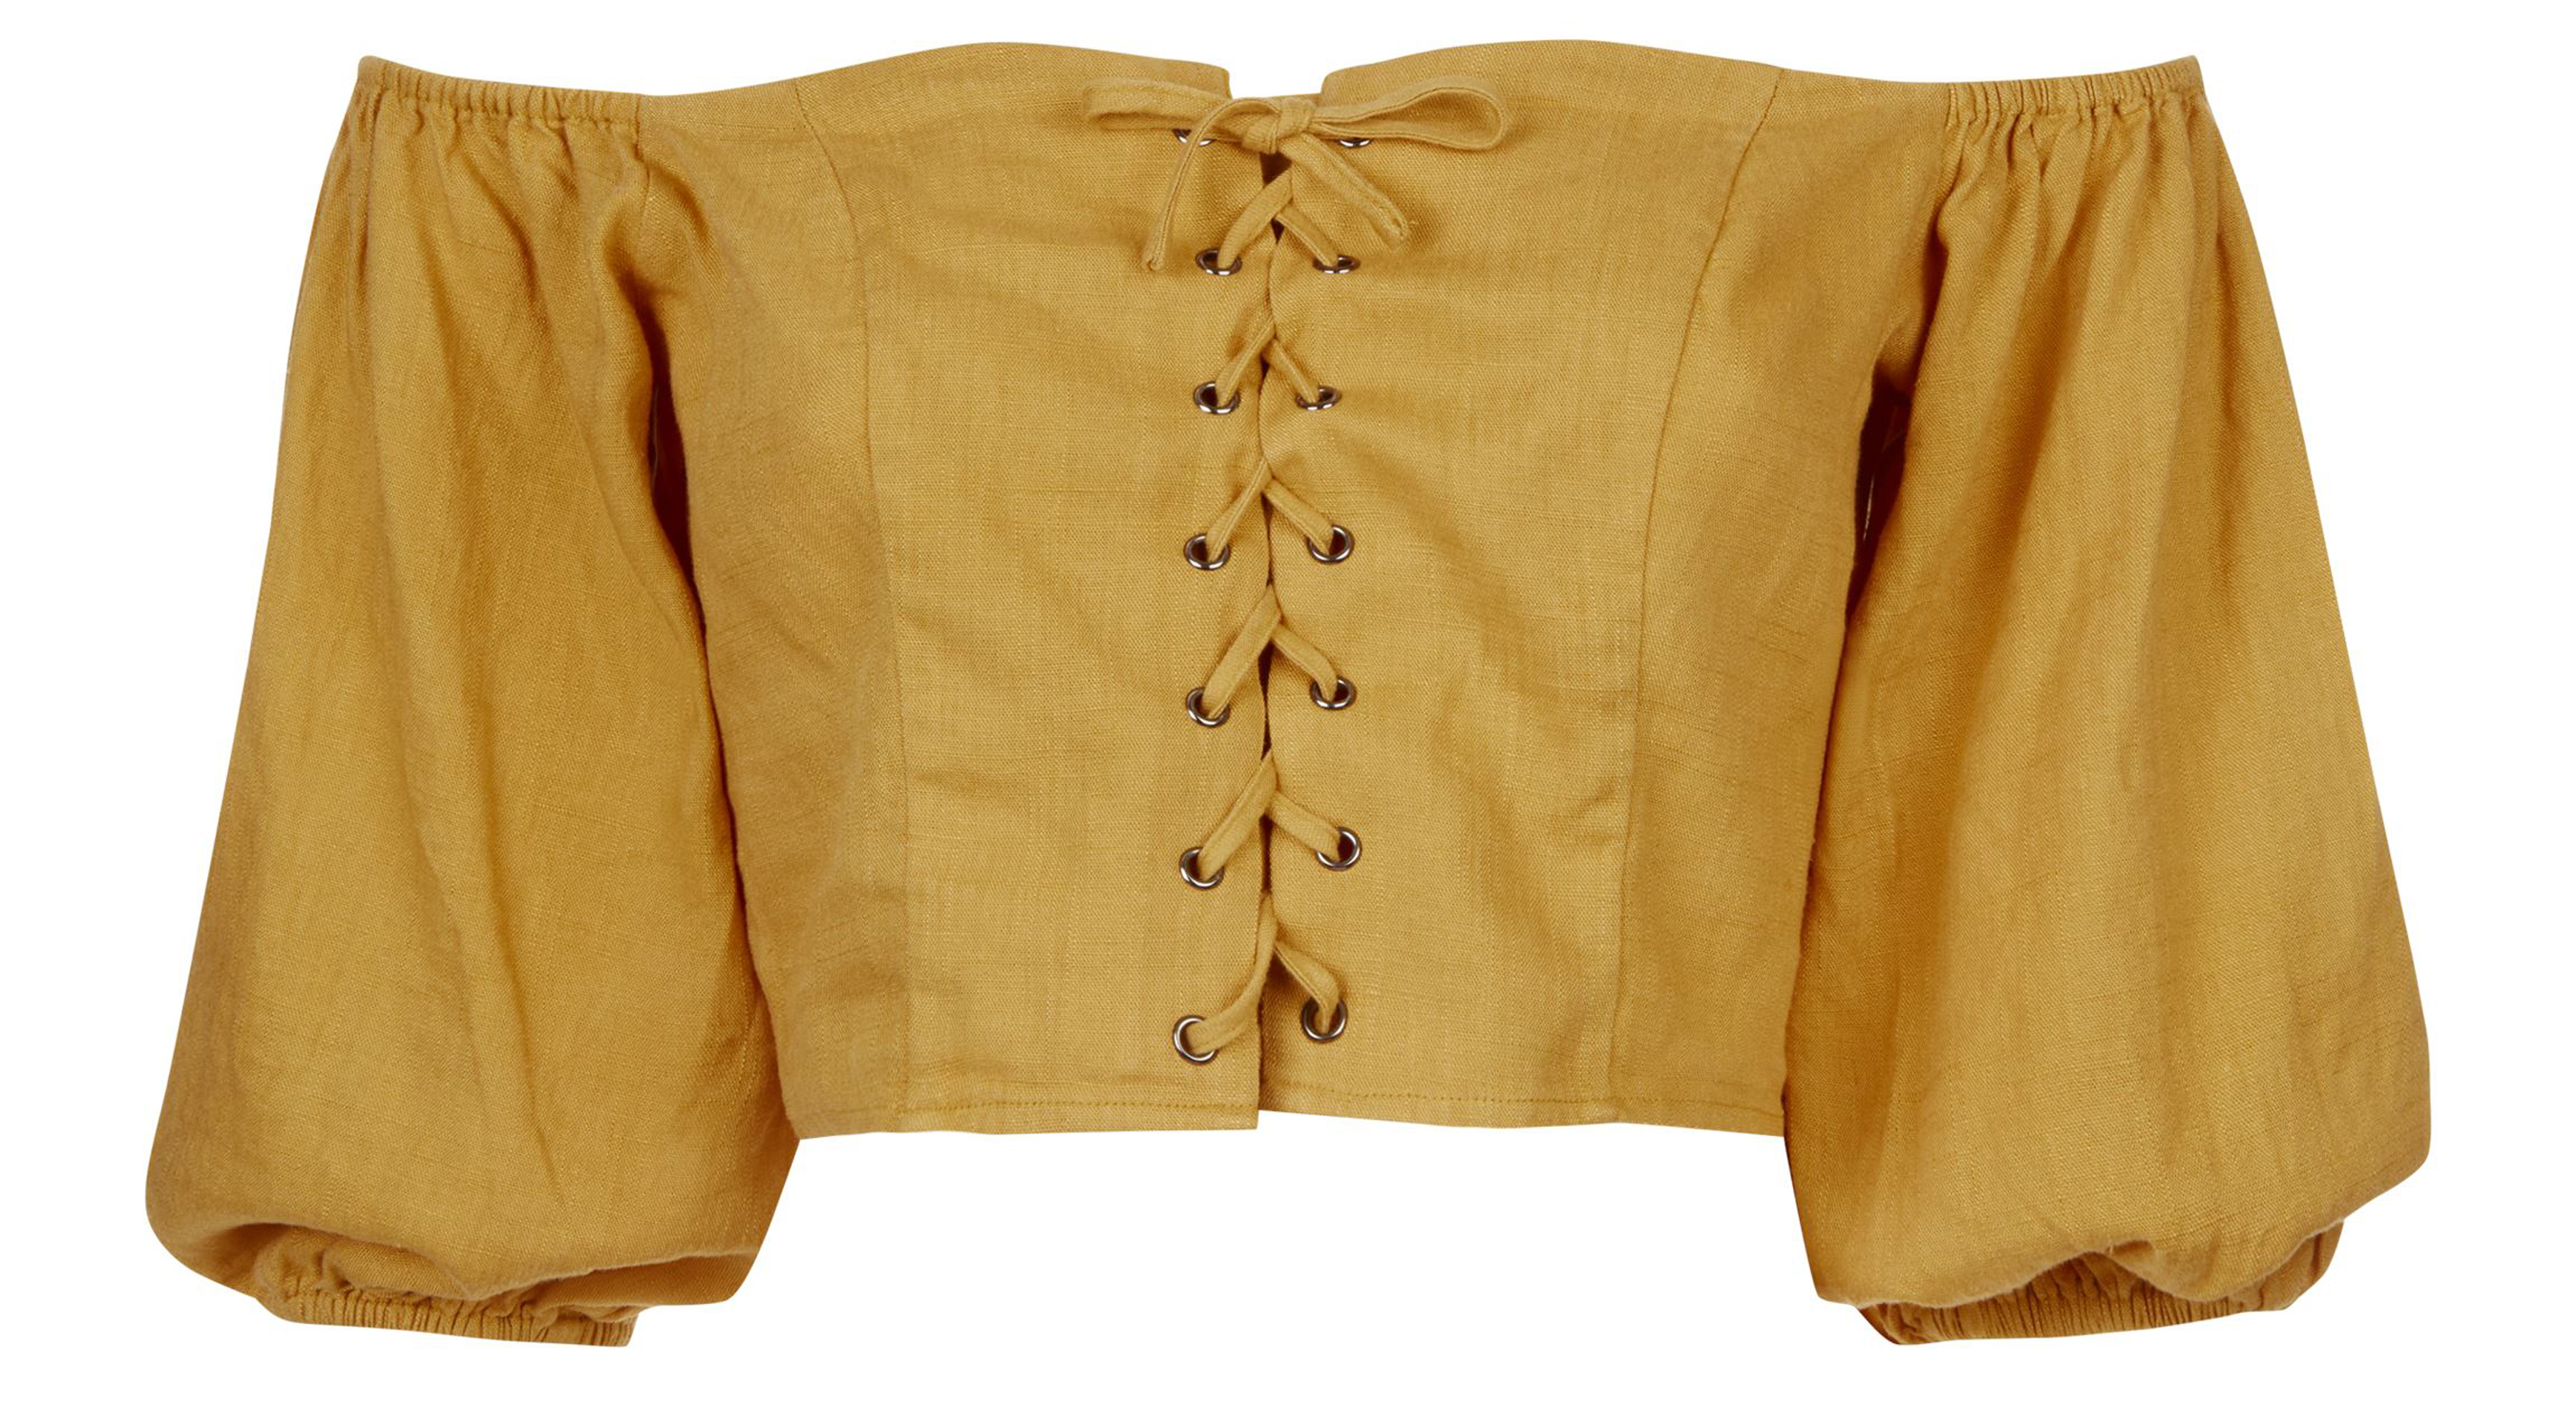 New Look Yellow Linen-Look Lace Up Milkmaid Top